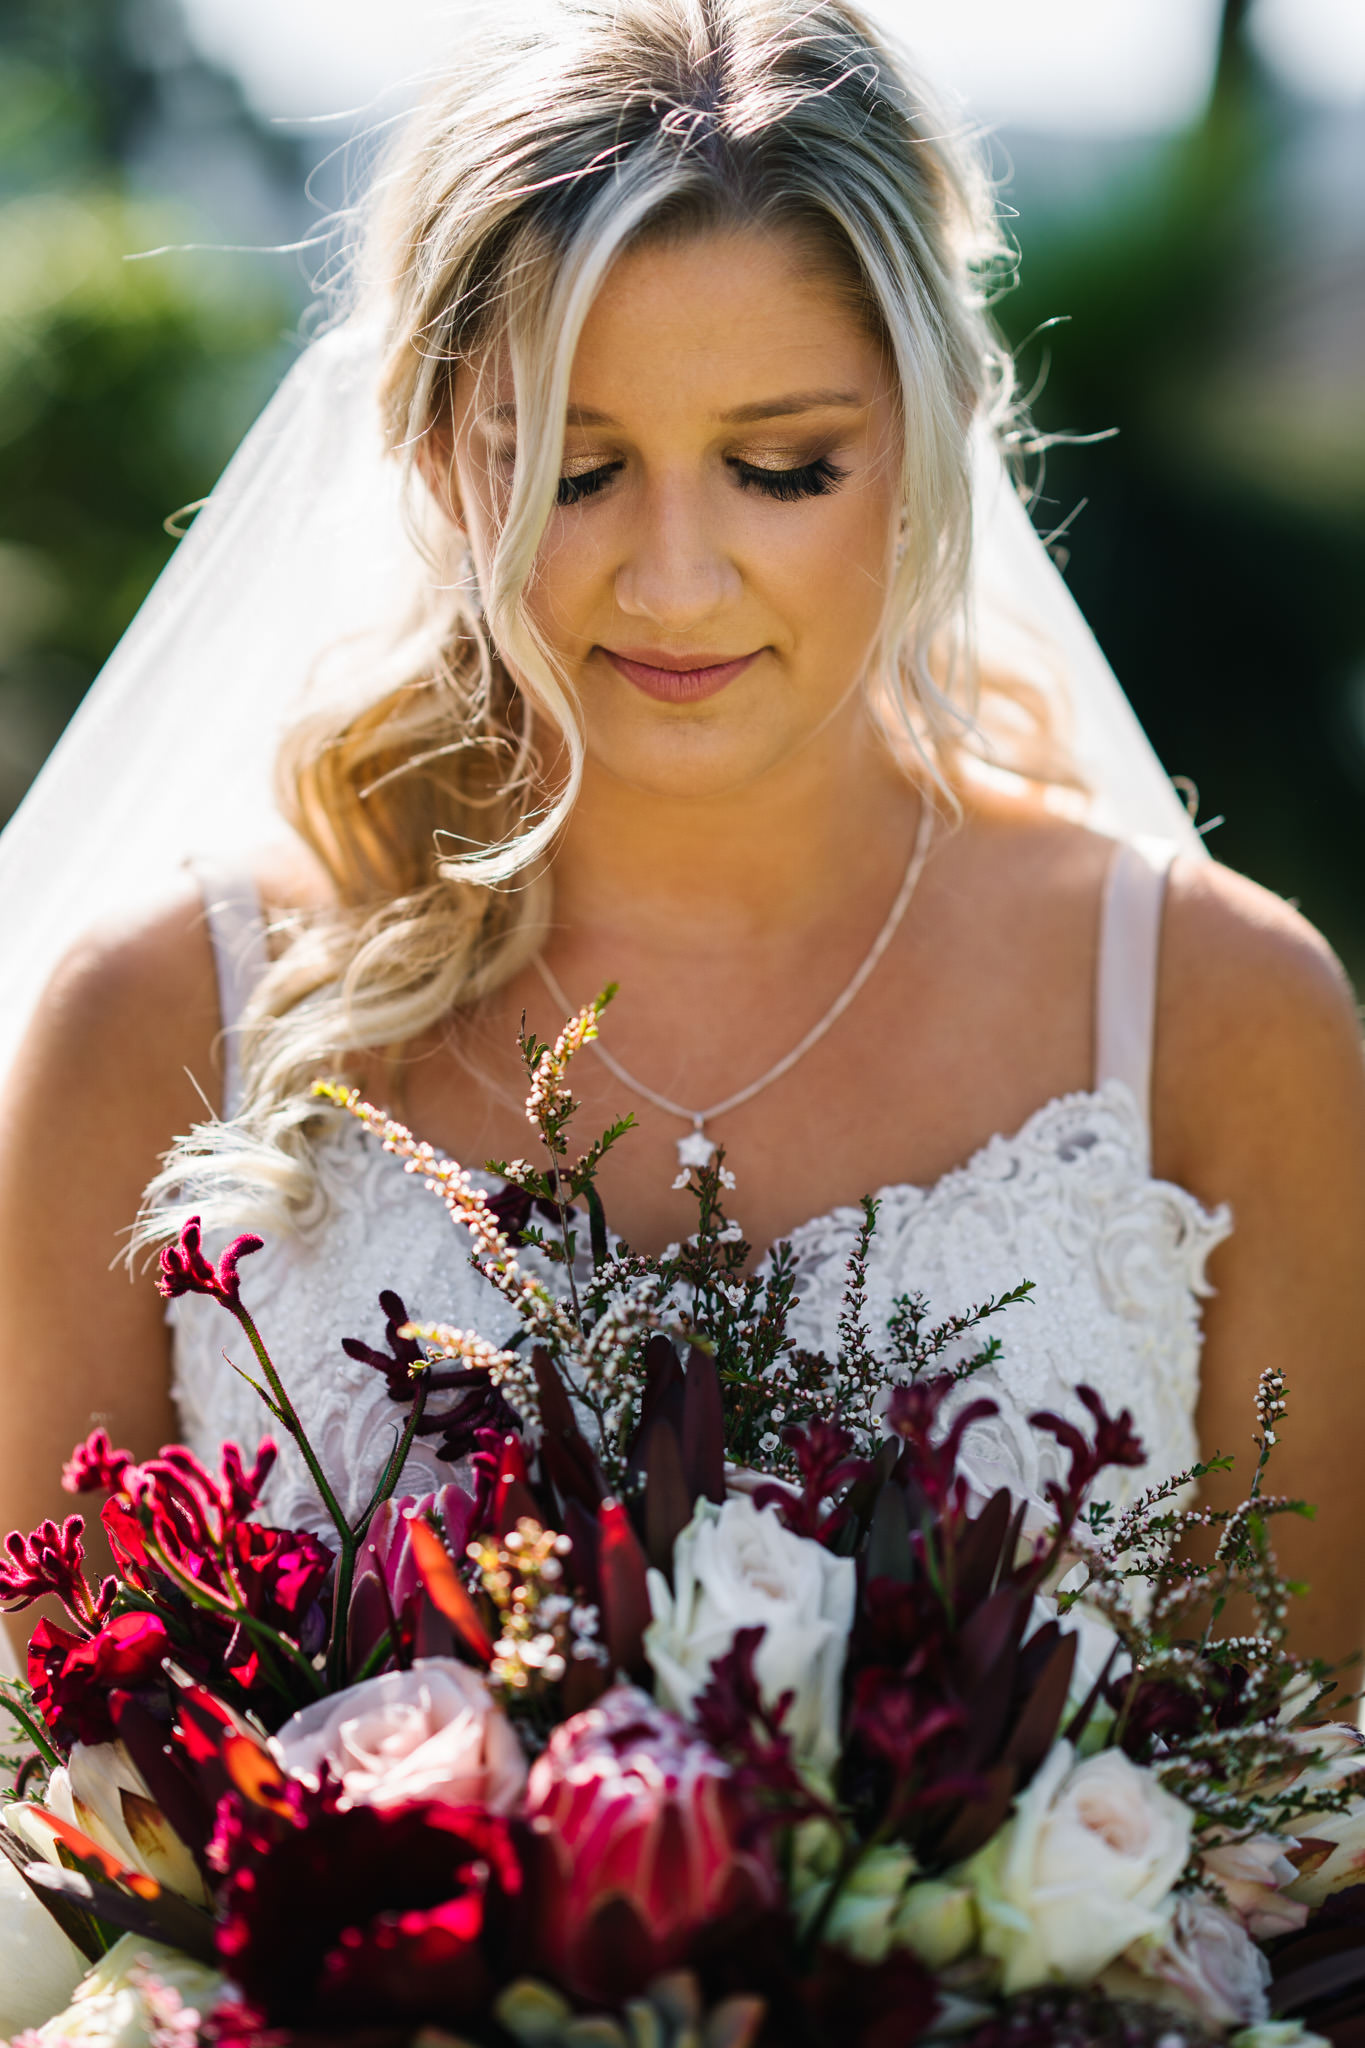 Bride holding bouquet with proteas, roses and kangaroo paw